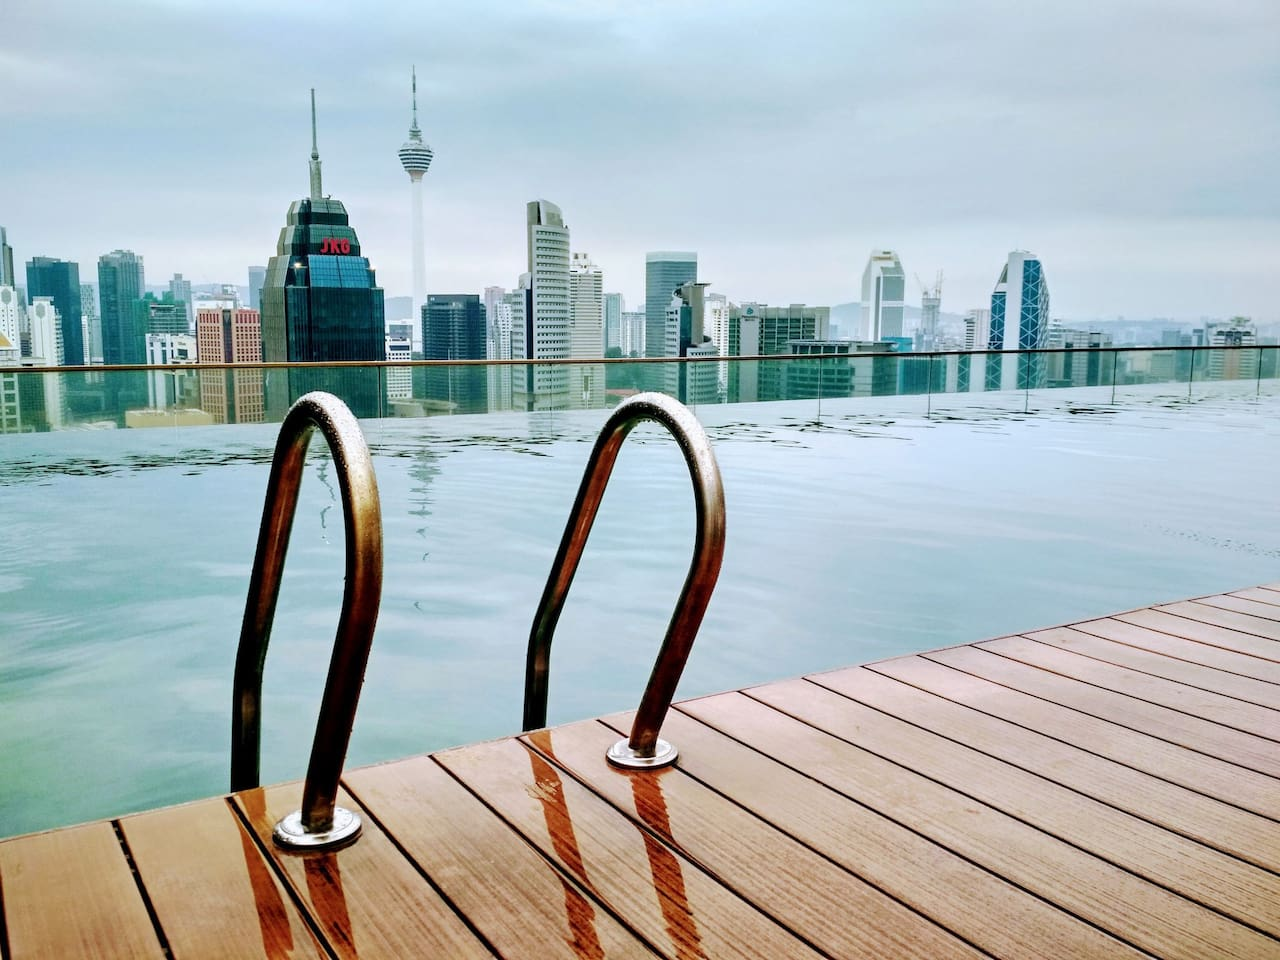 Infinity pool with amazing KL view including Petronas Twin Towers & KL Tower.